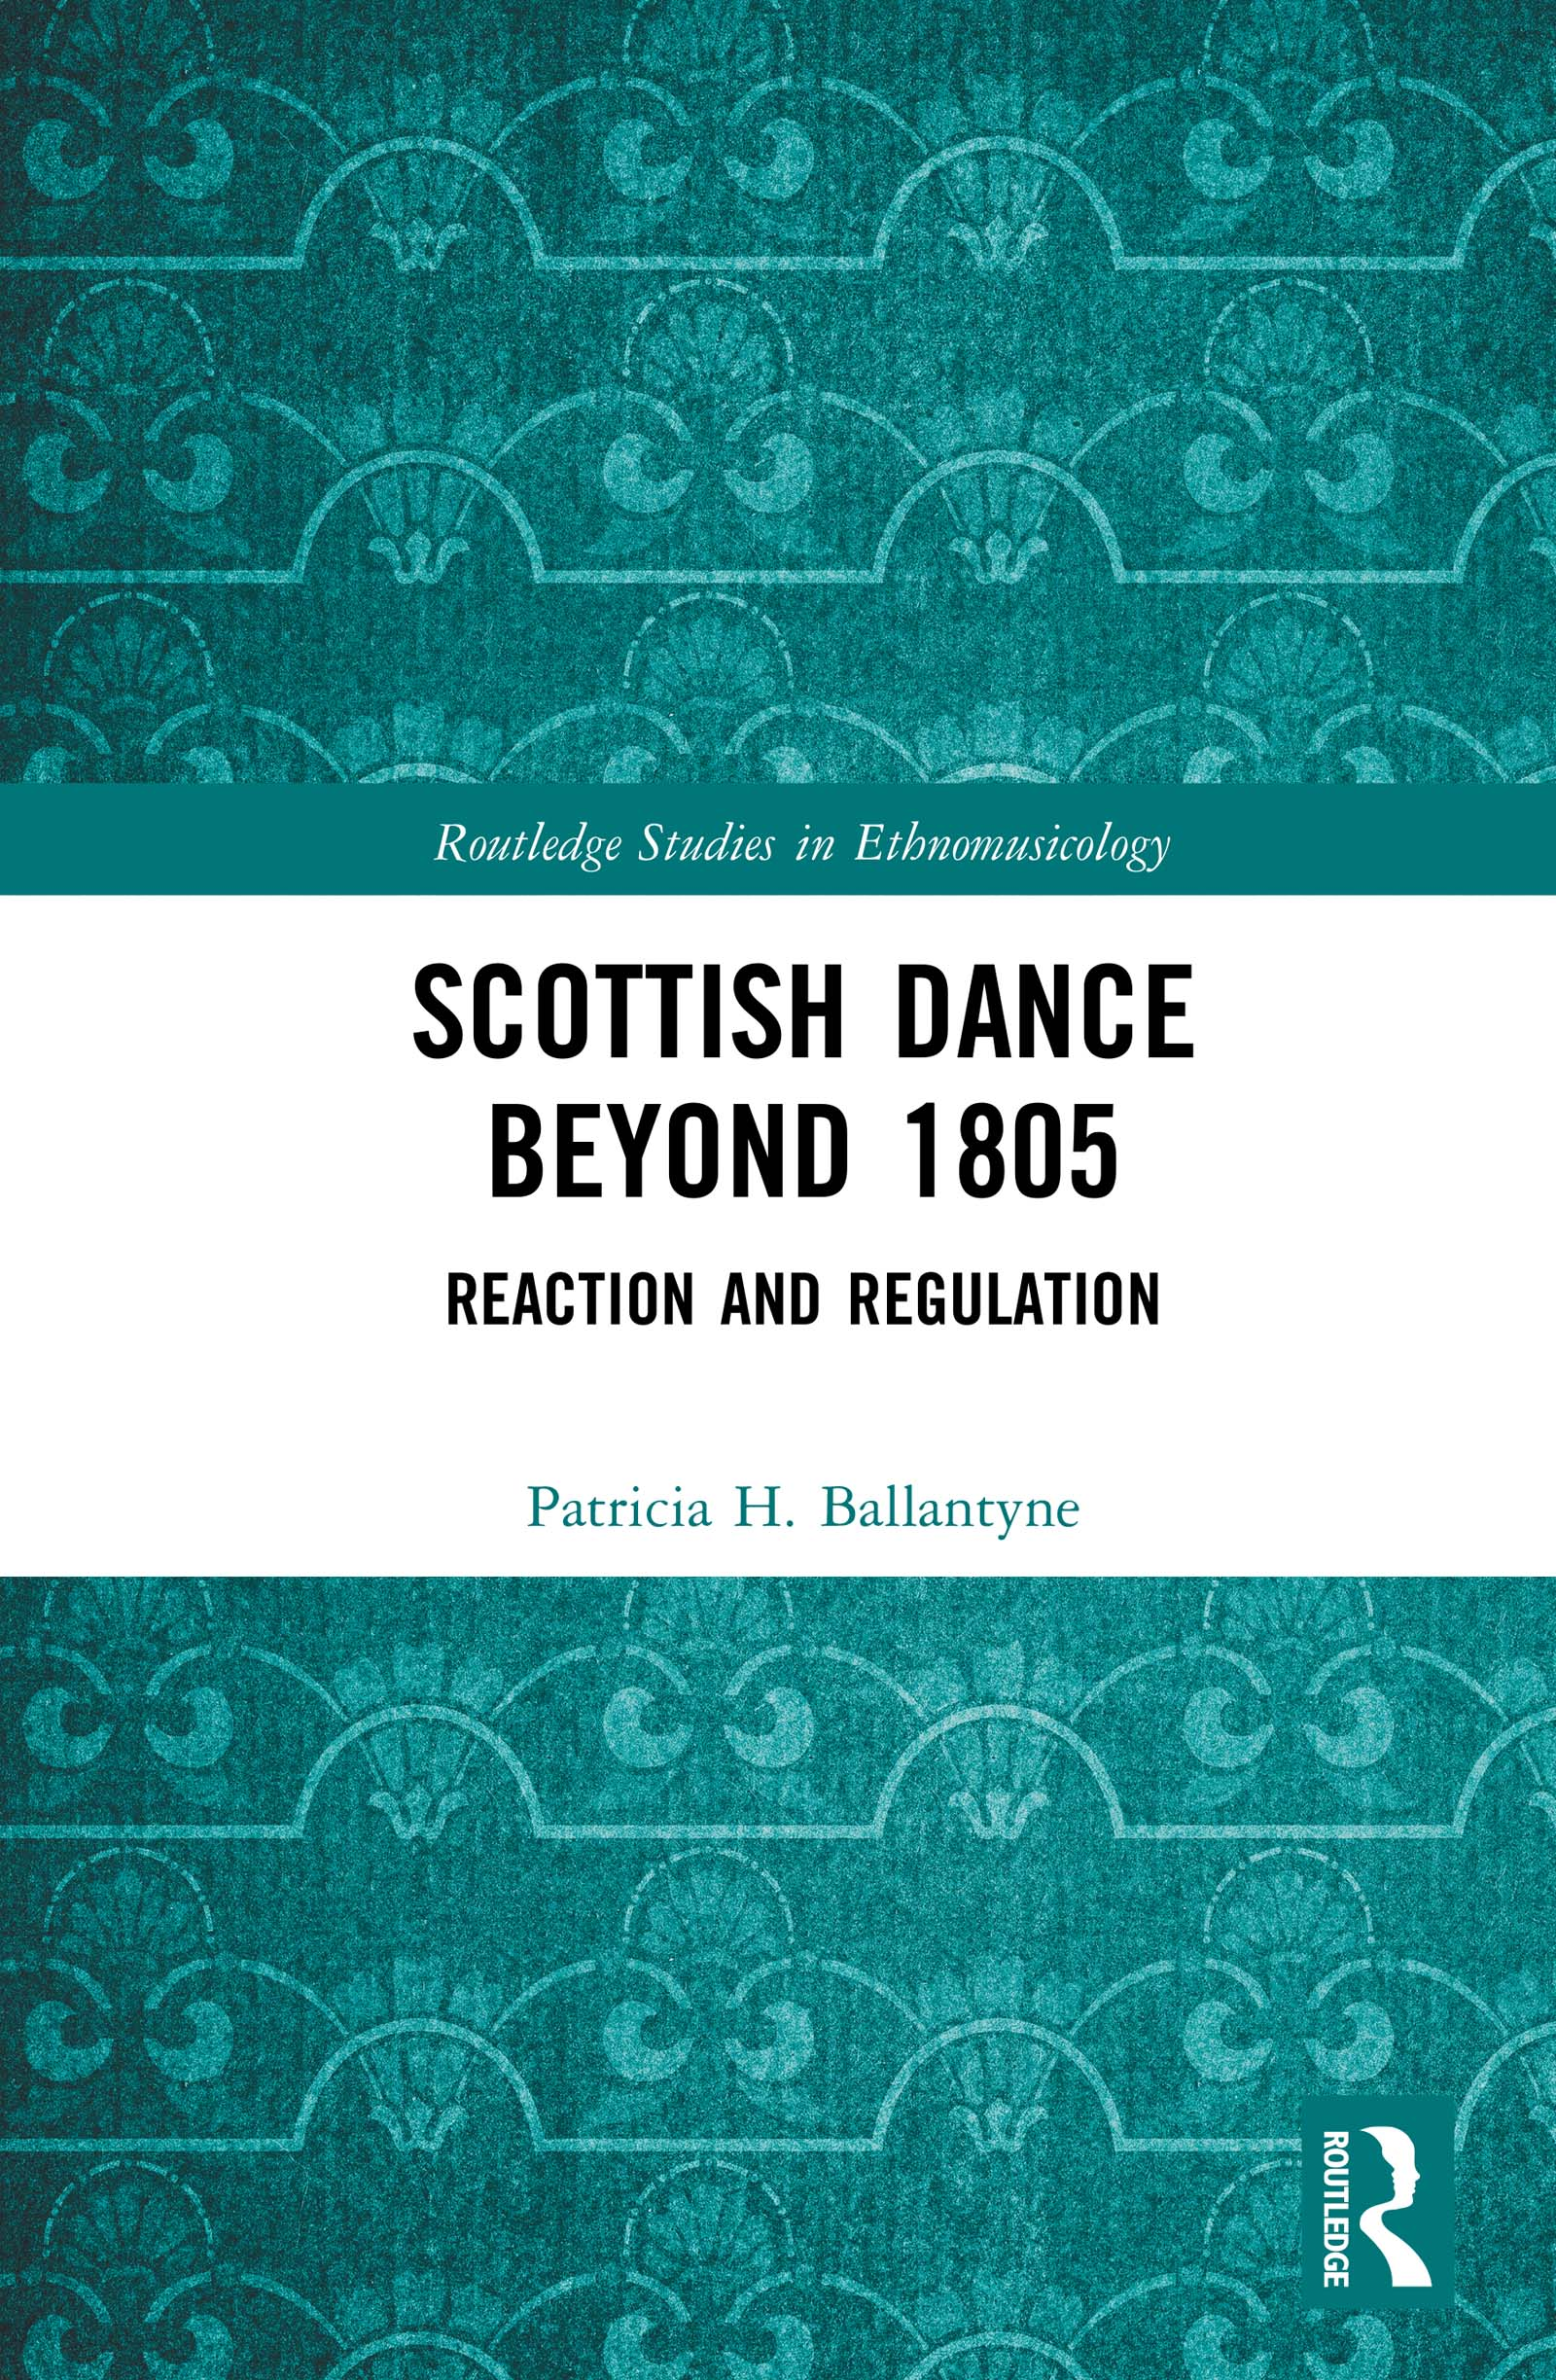 Scottish Dance Beyond 1805: Reaction and Regulation book cover